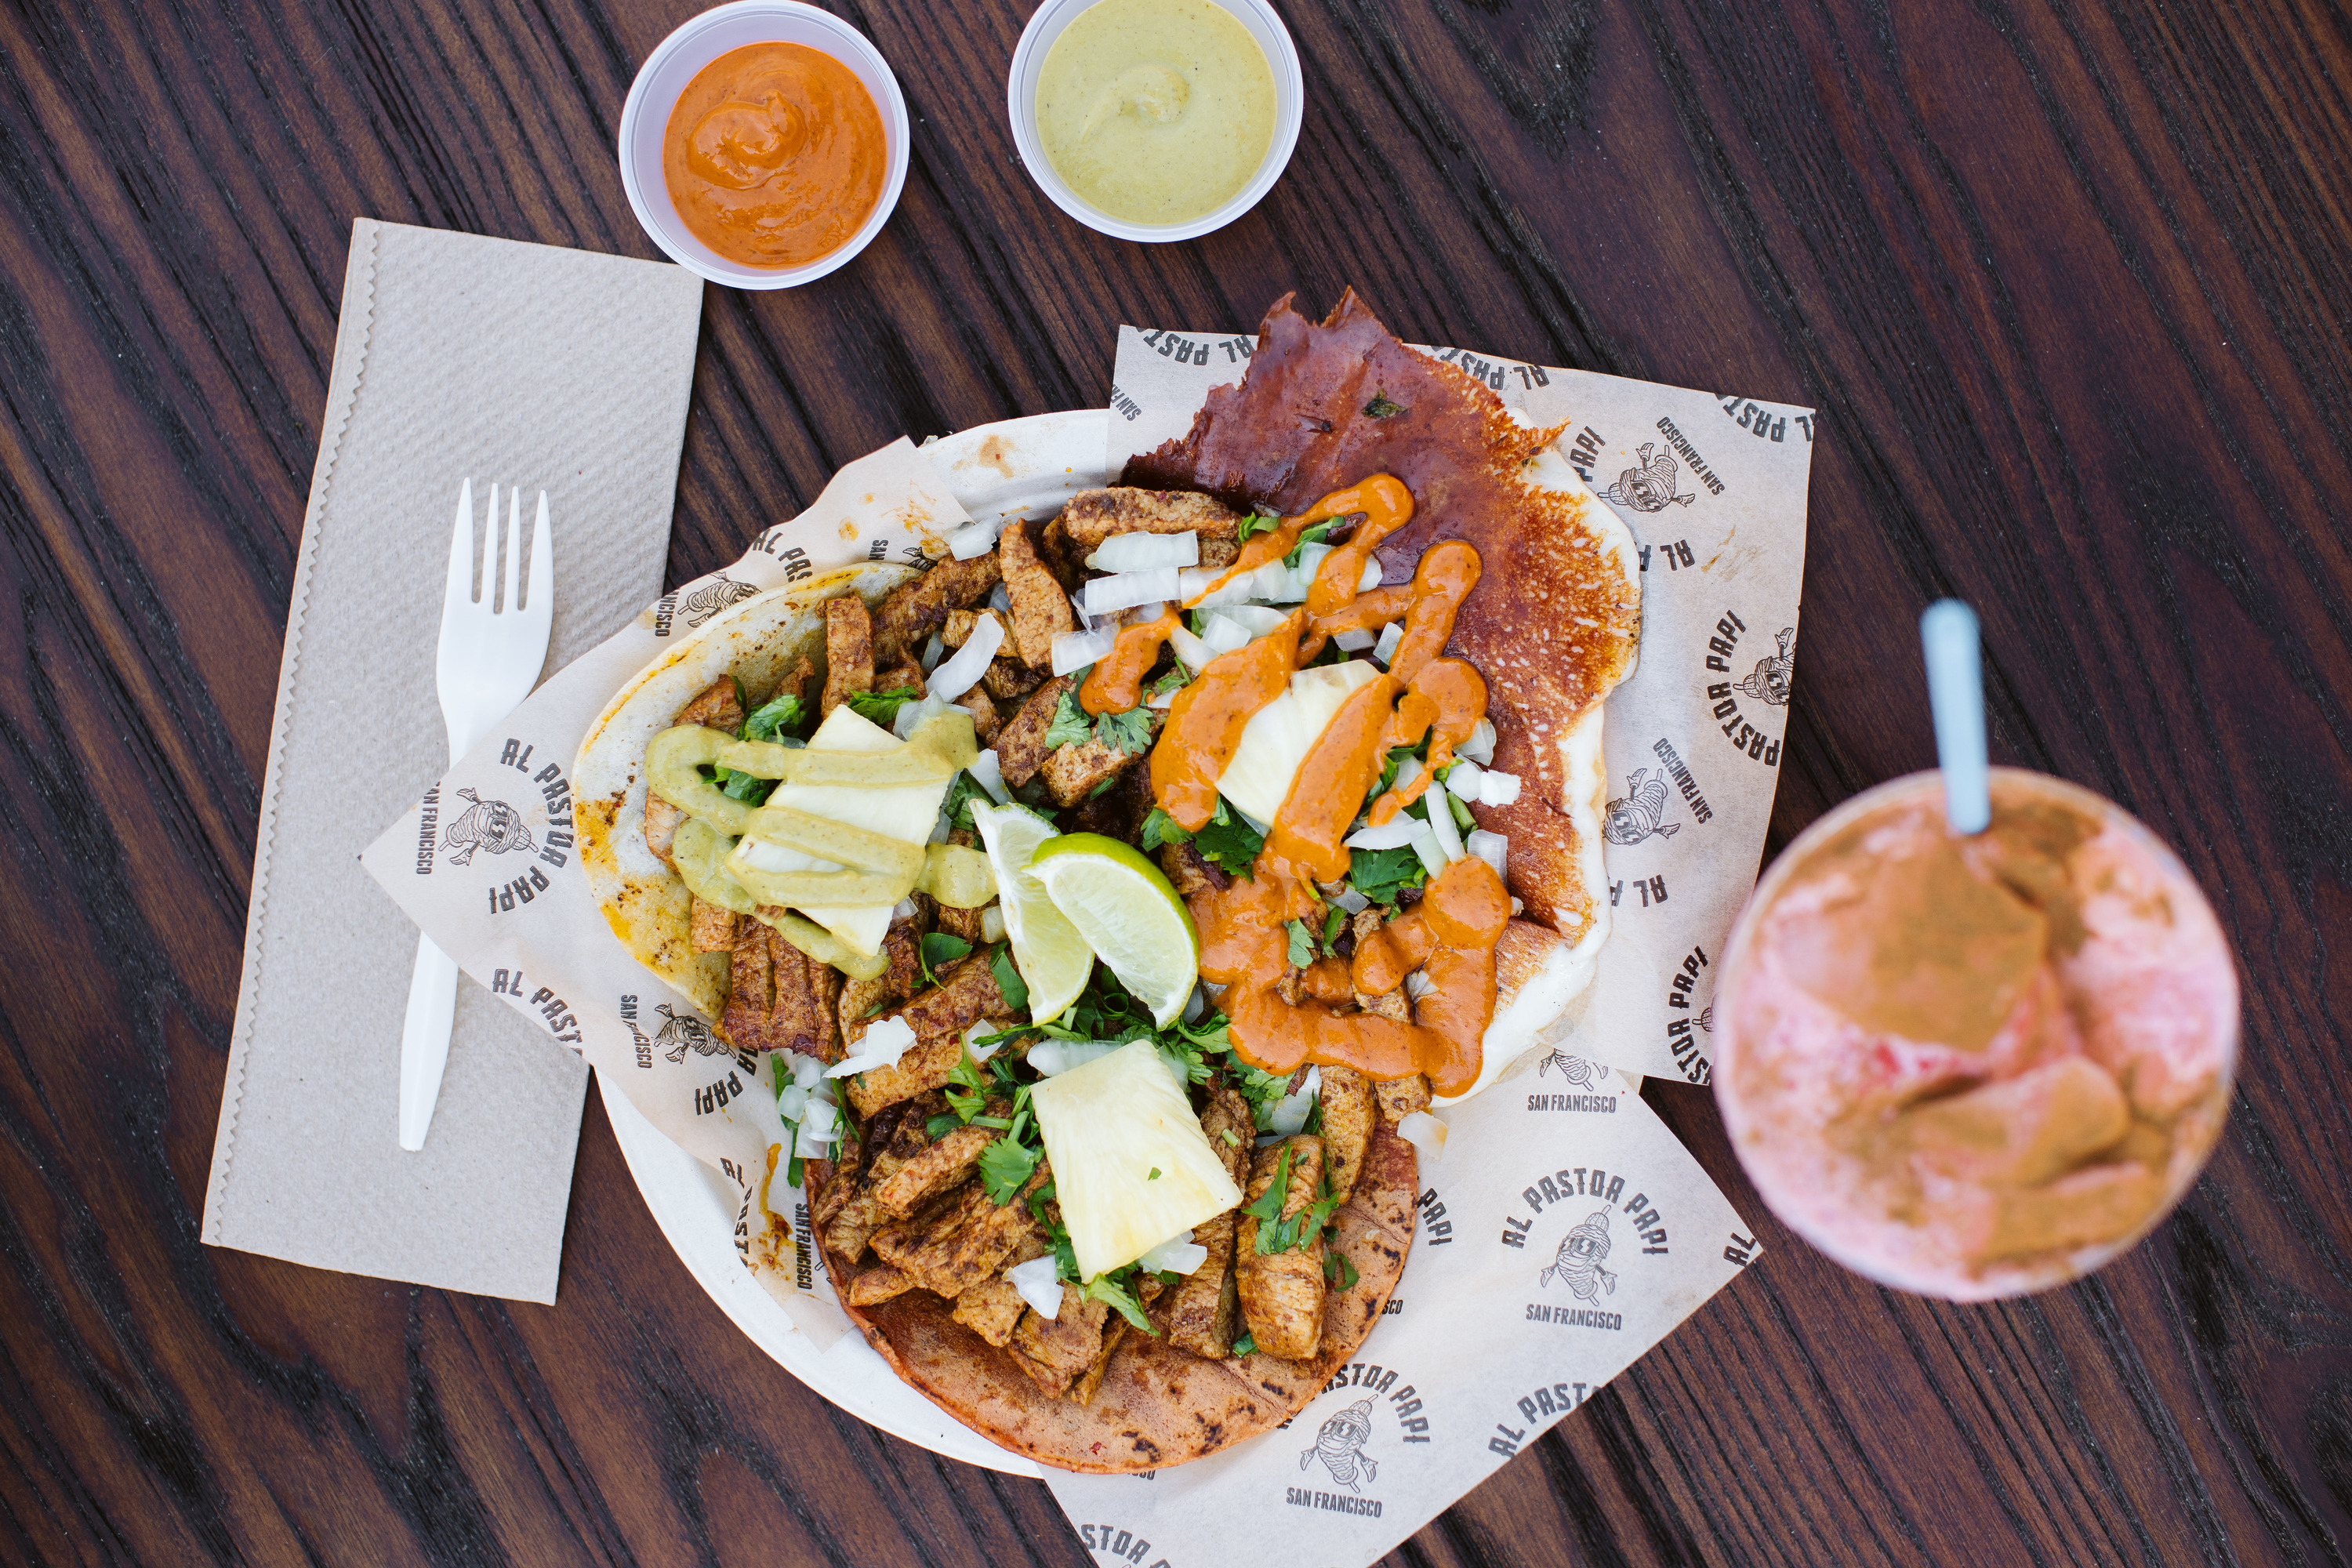 The tastiest tacos in San Francisco